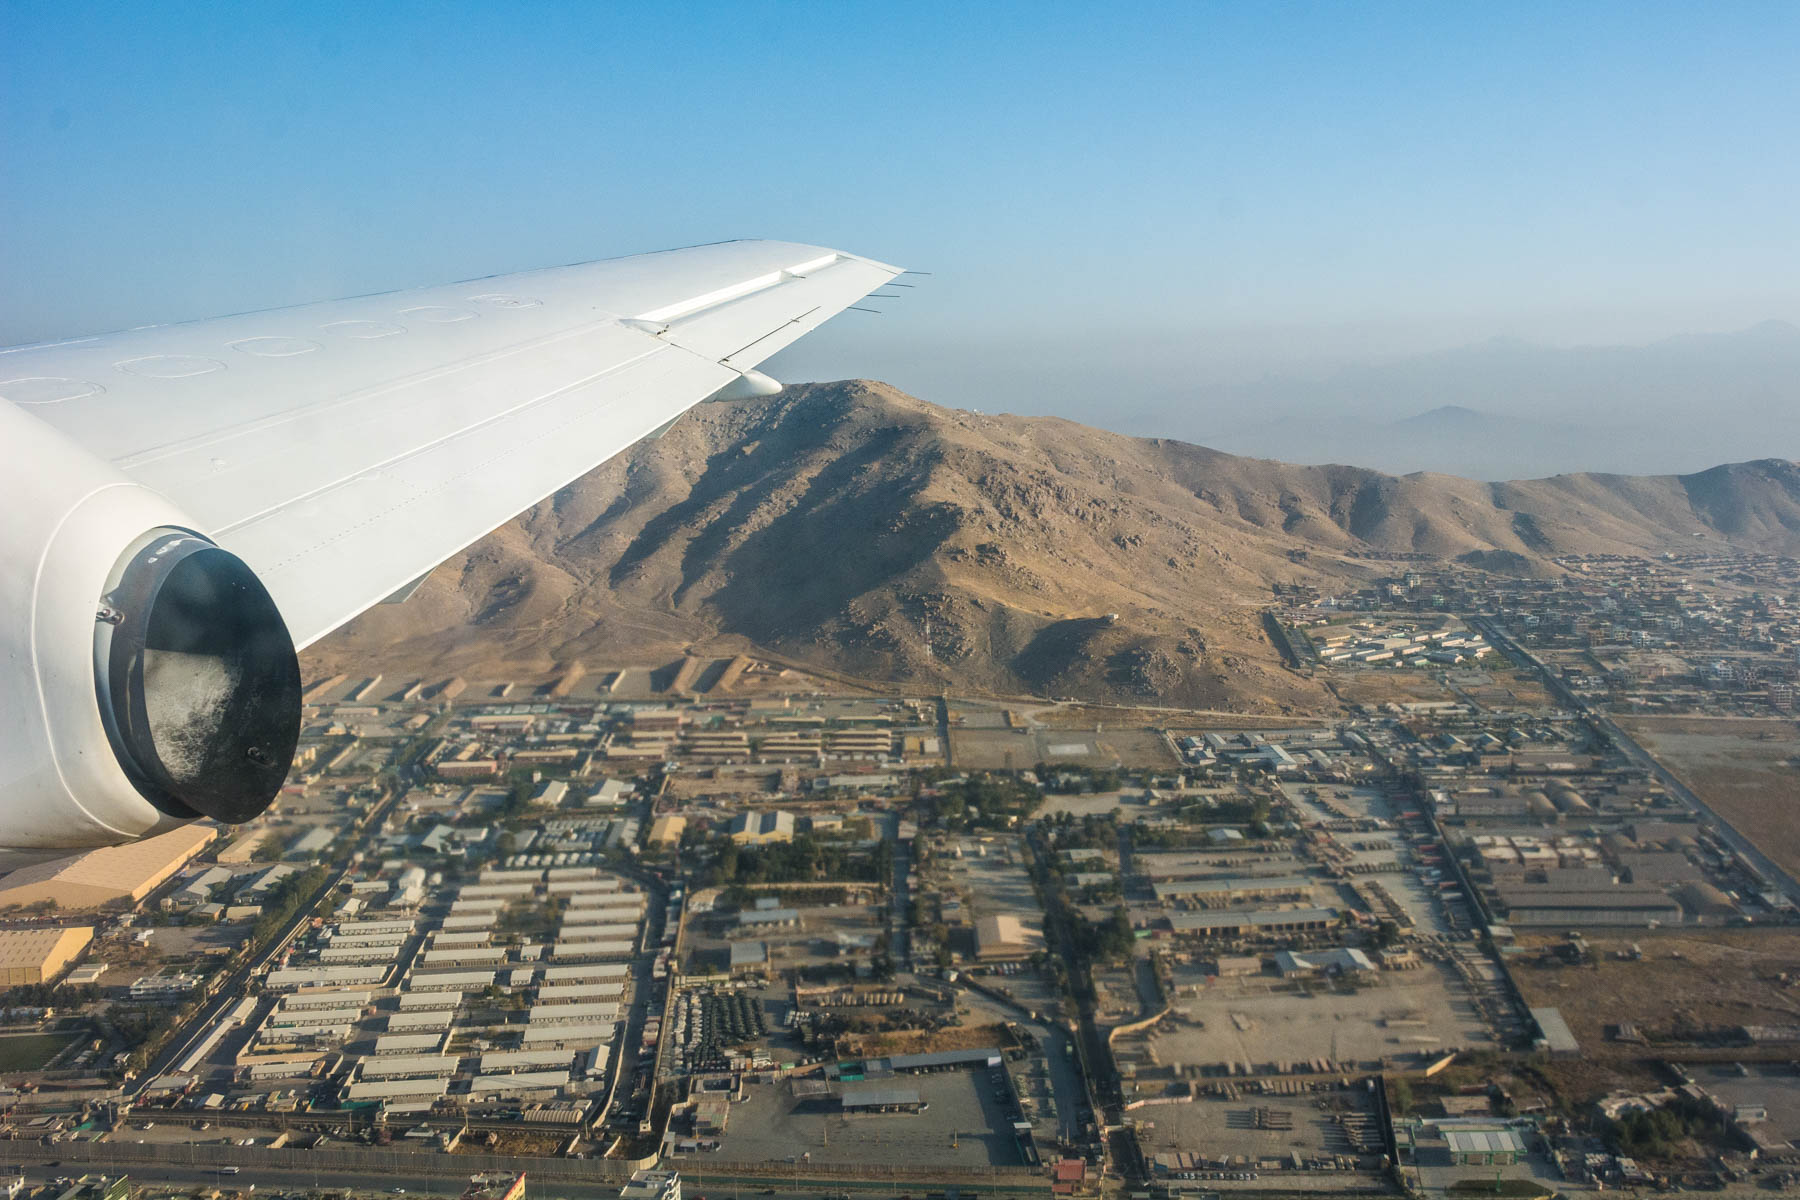 Flying away from Kabul, Afghanistan - Lost With Purpose